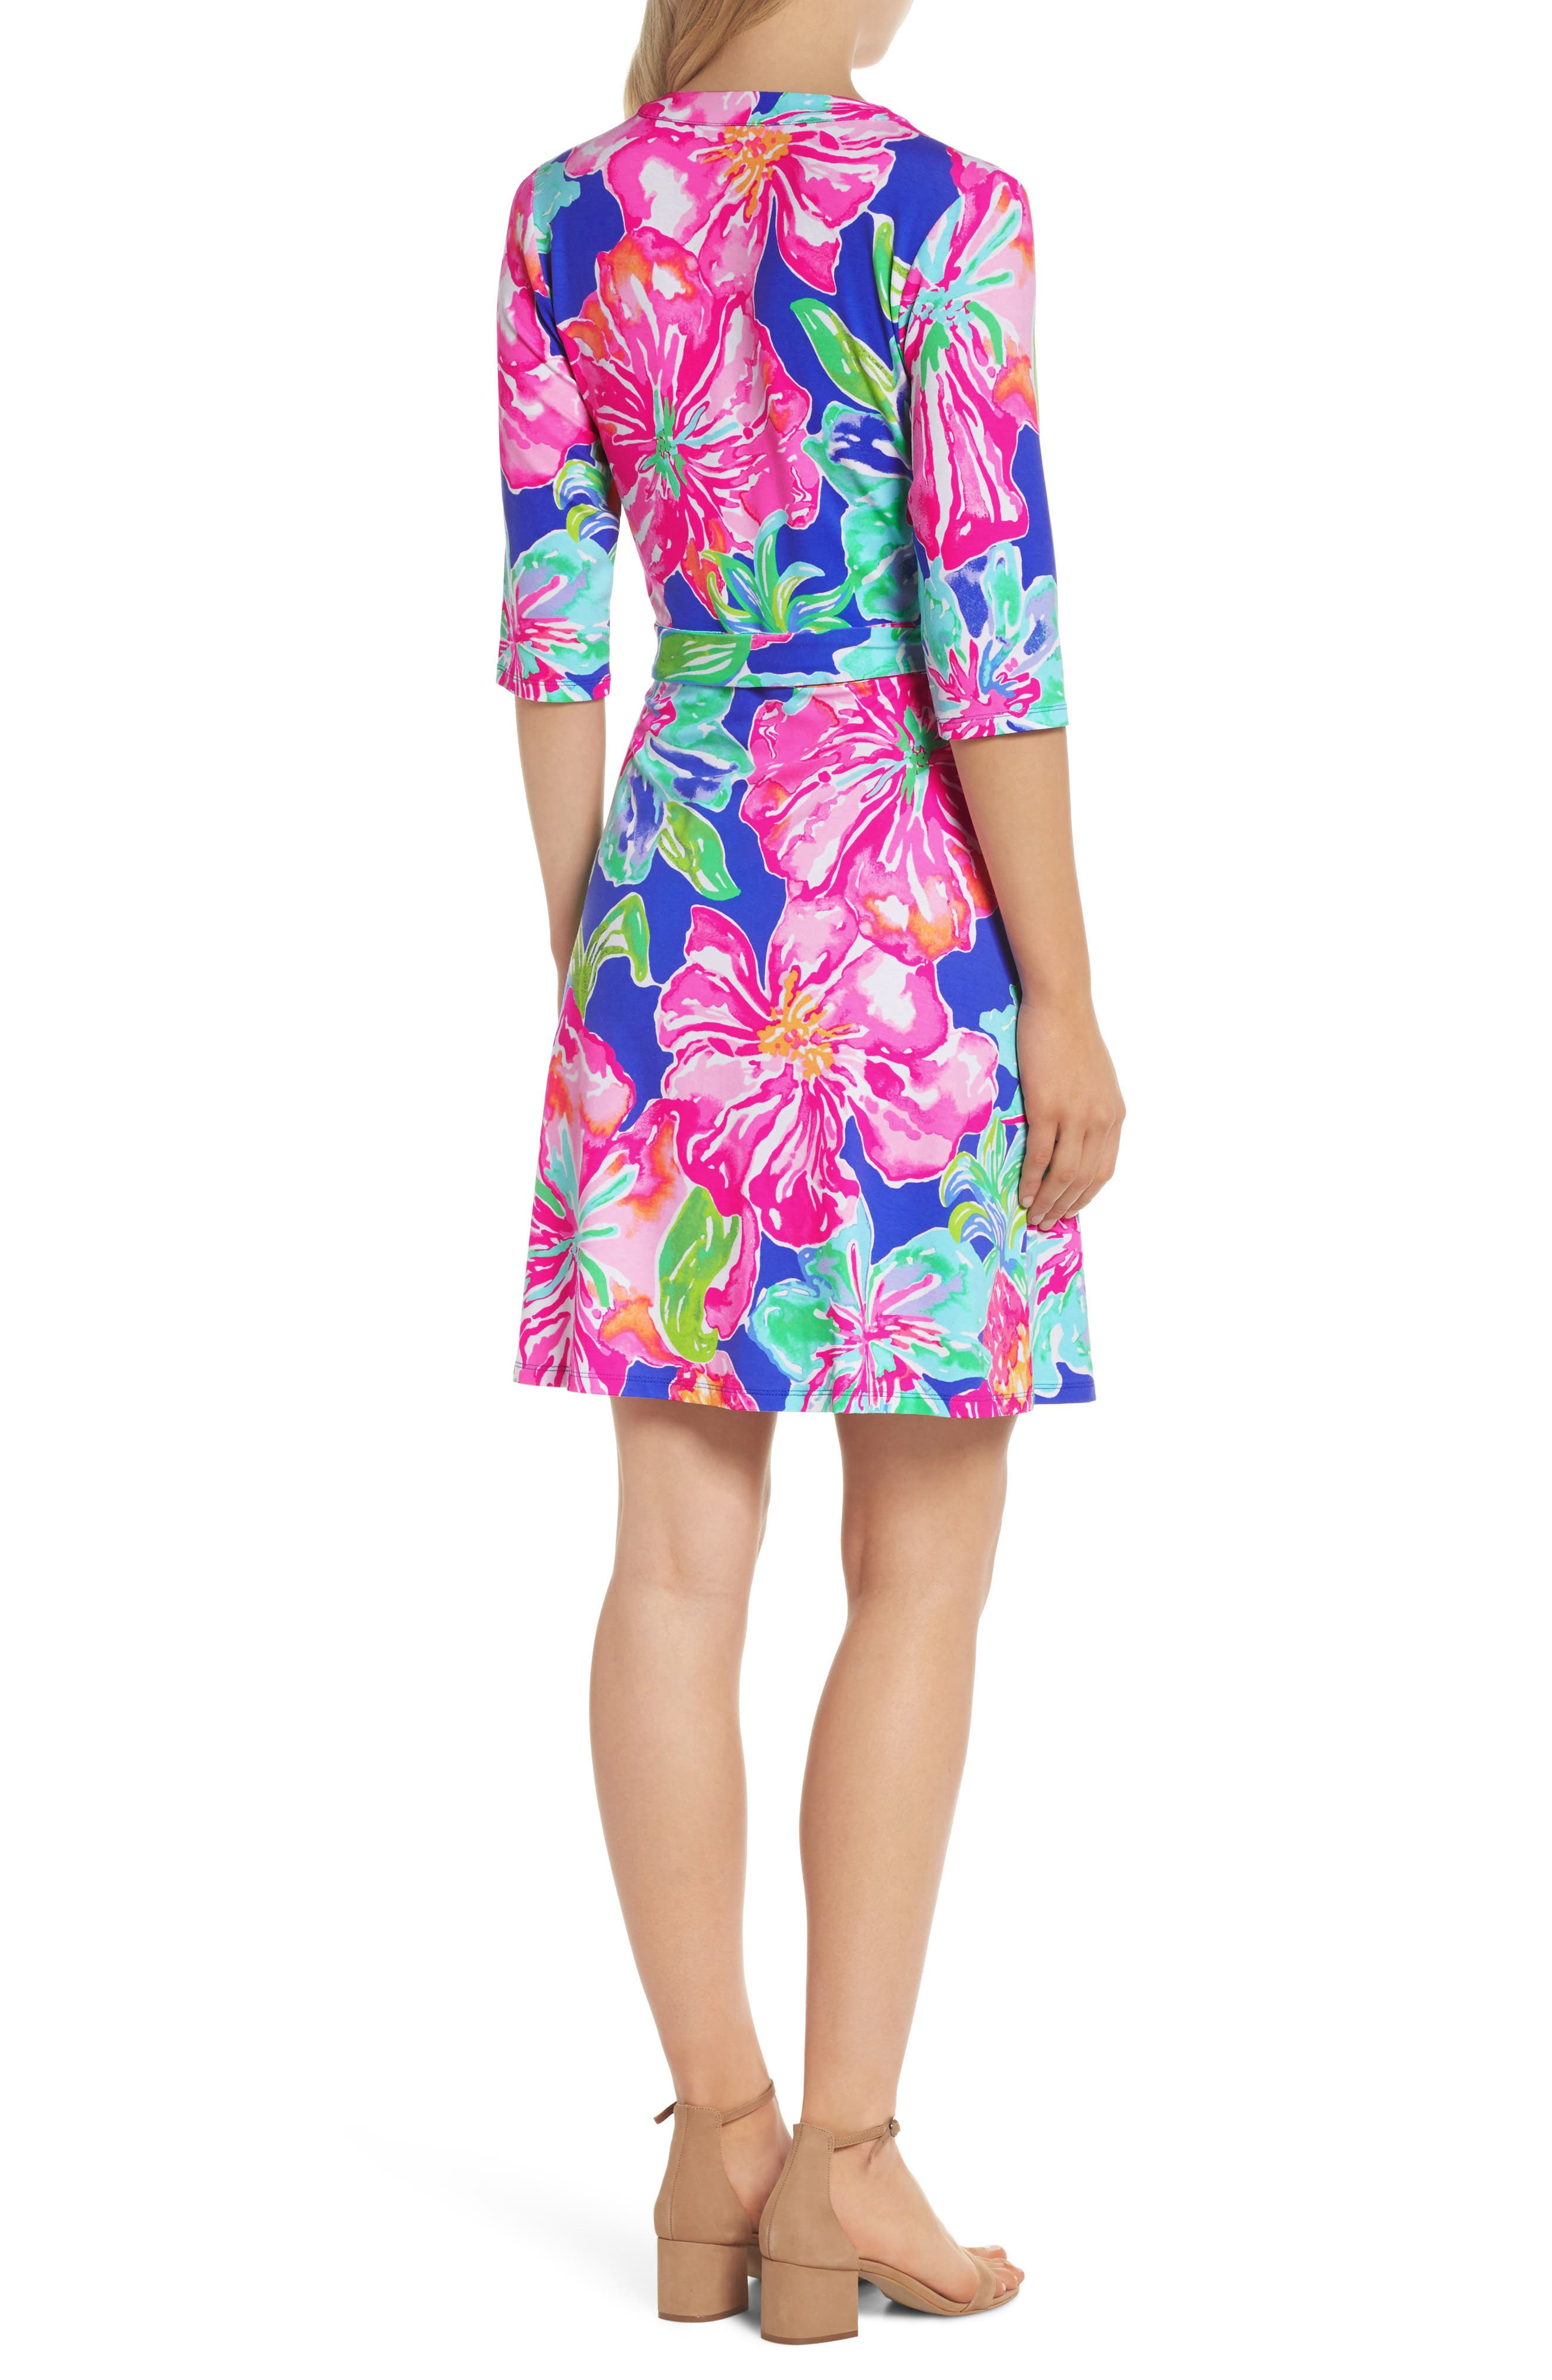 Marvista Wrap Dress,                             Alternate thumbnail 2, color,                             BECKON BLUE JUNGLE UTOPIA